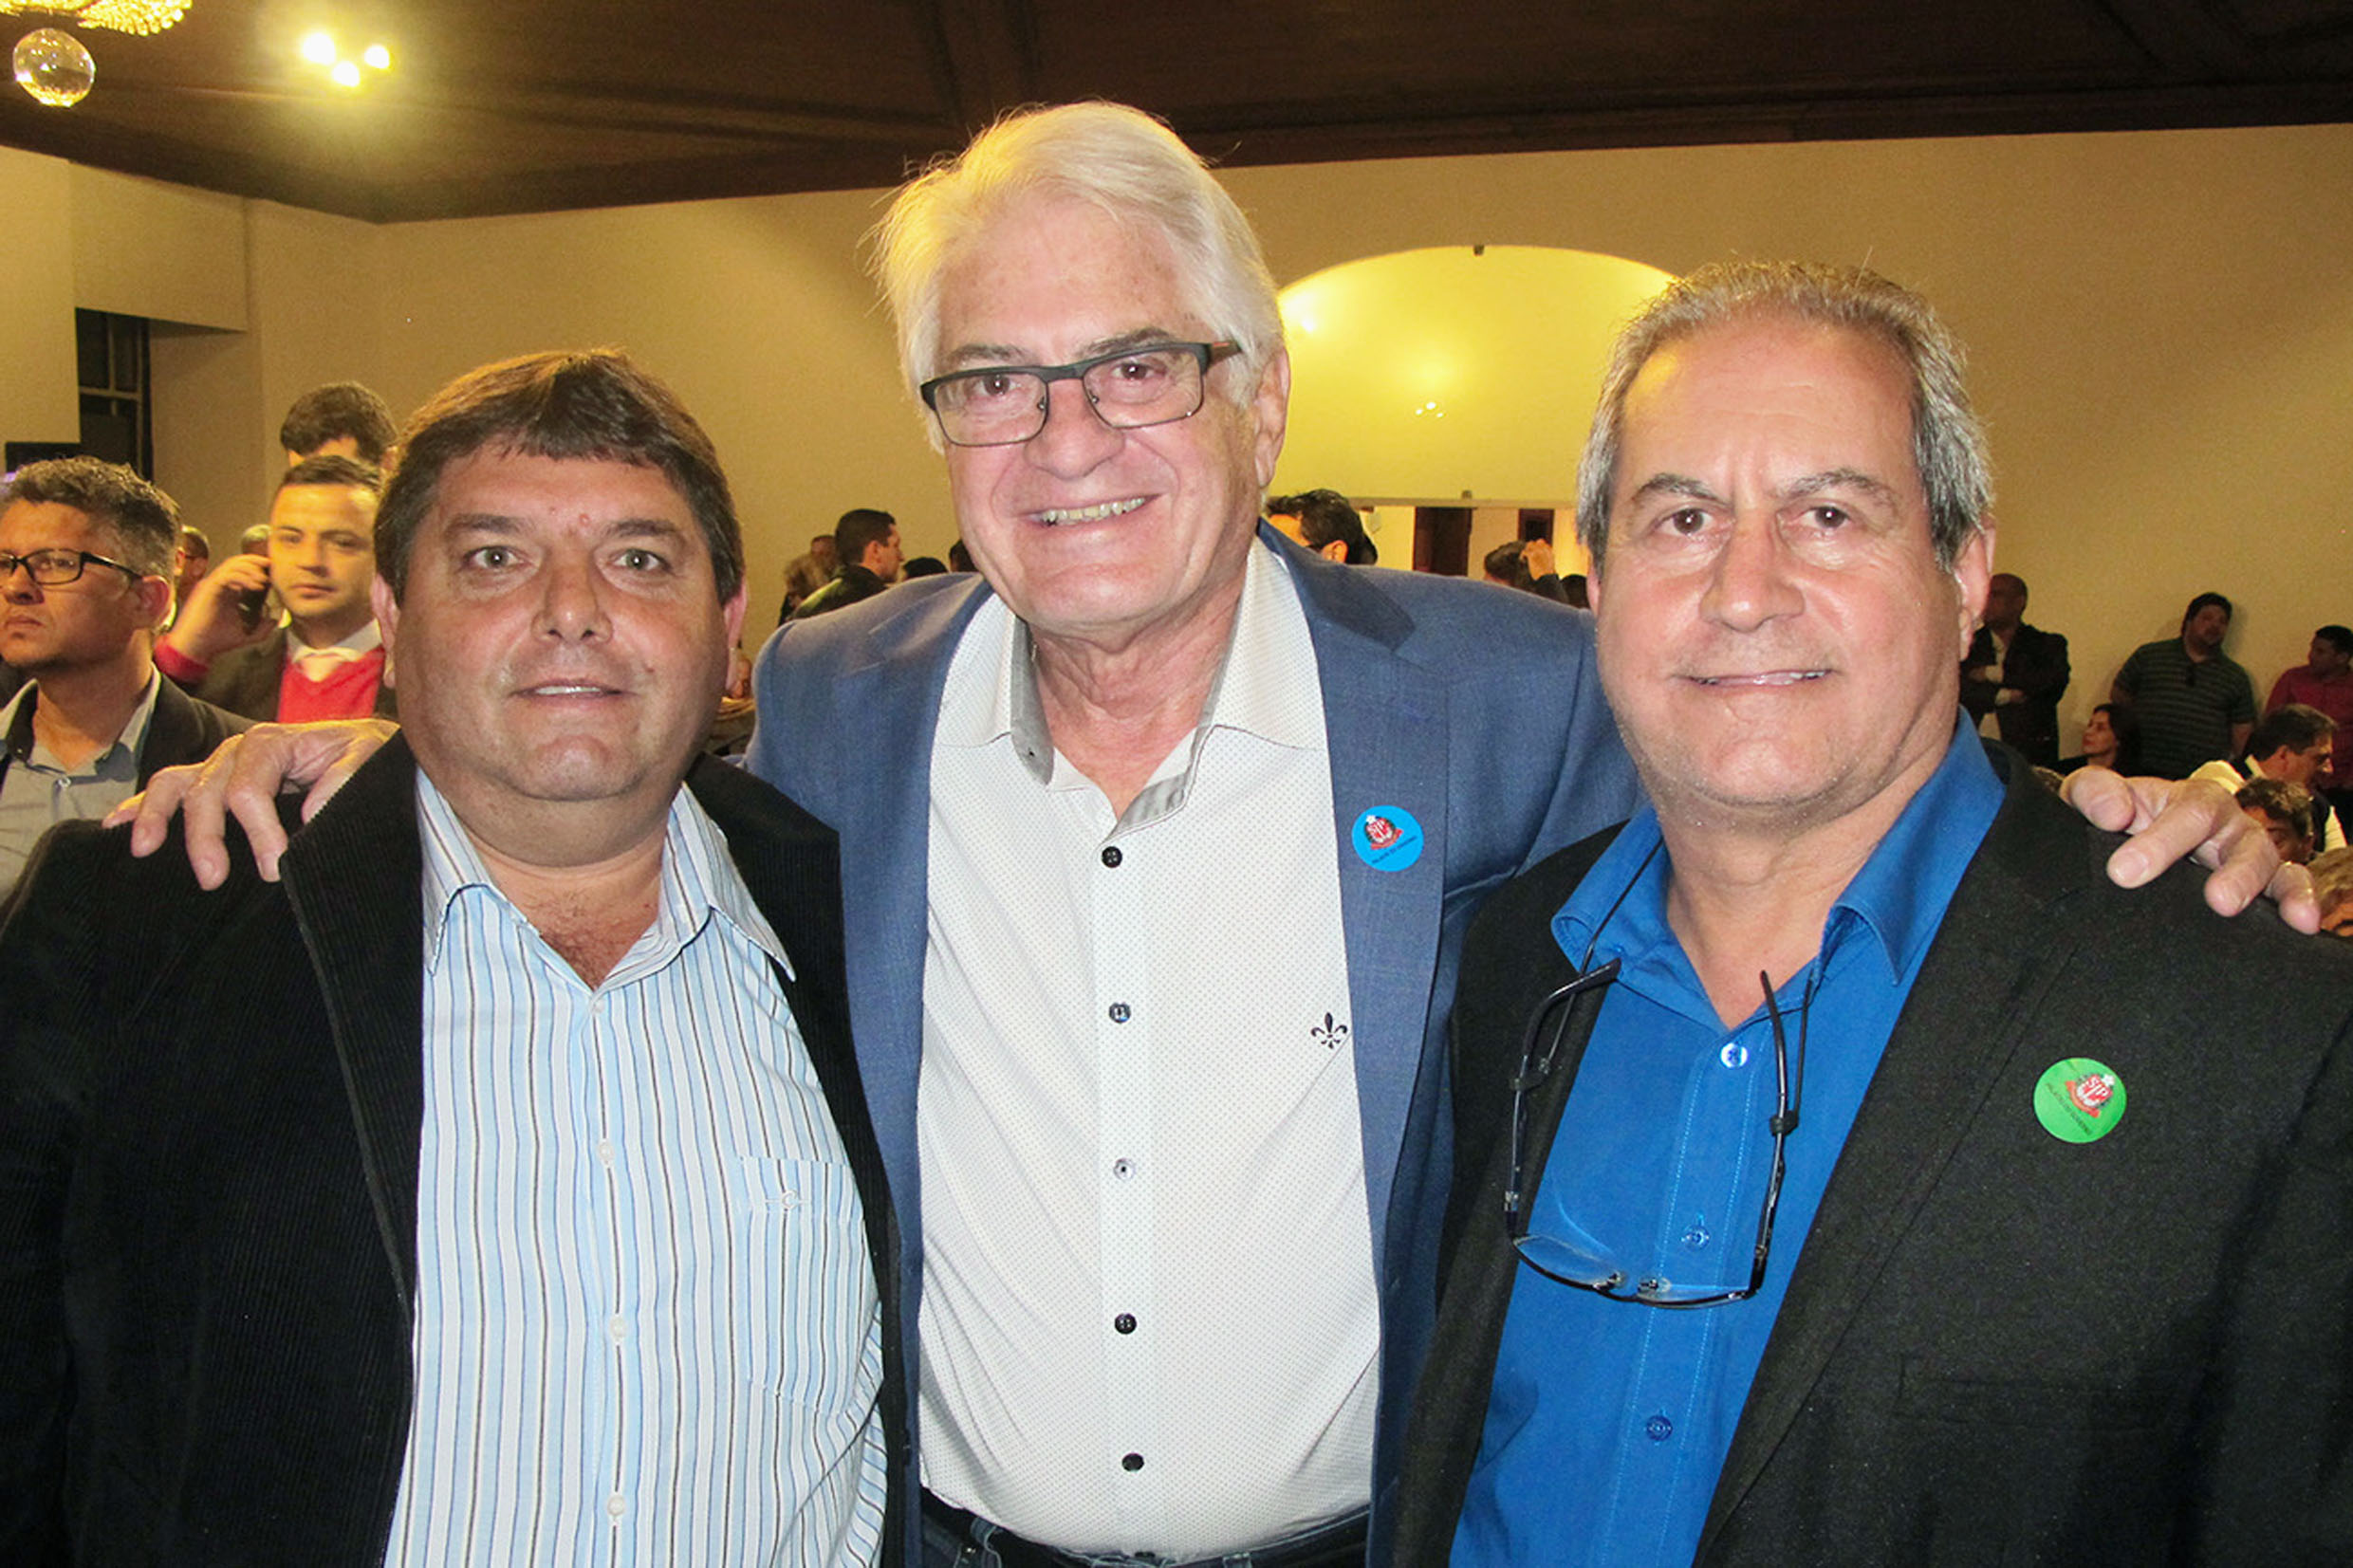 Onivaldo Curvina, Roberto Engler e Elson Machado<a style='float:right' href='https://www3.al.sp.gov.br/repositorio/noticia/N-07-2018/fg225951.jpg' target=_blank><img src='/_img/material-file-download-white.png' width='14px' alt='Clique para baixar a imagem'></a>